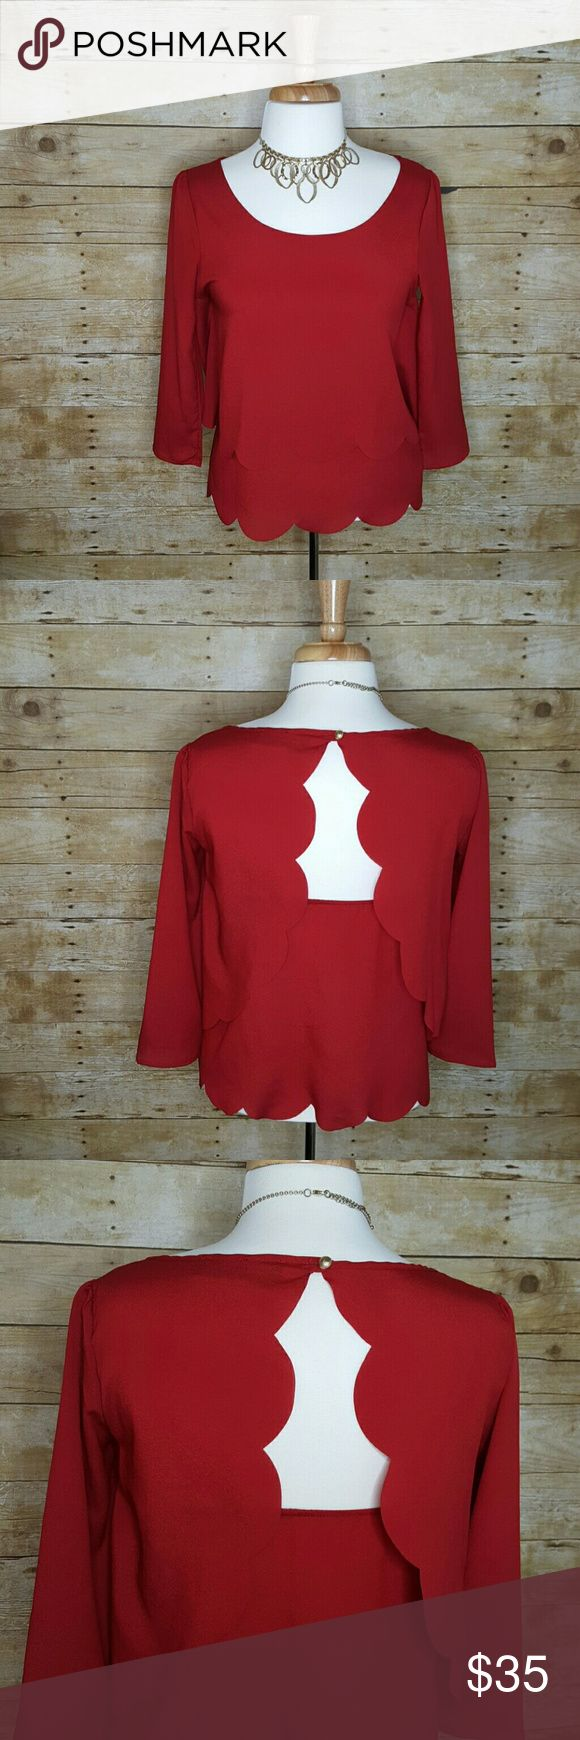 Akira Chicago Red Label Open Back Scalloped Top Akira Chicago Red Label Open Back Scalloped Three Quarter Sleeve Top. Size Small. 100% Polyester AKIRA Tops Blouses